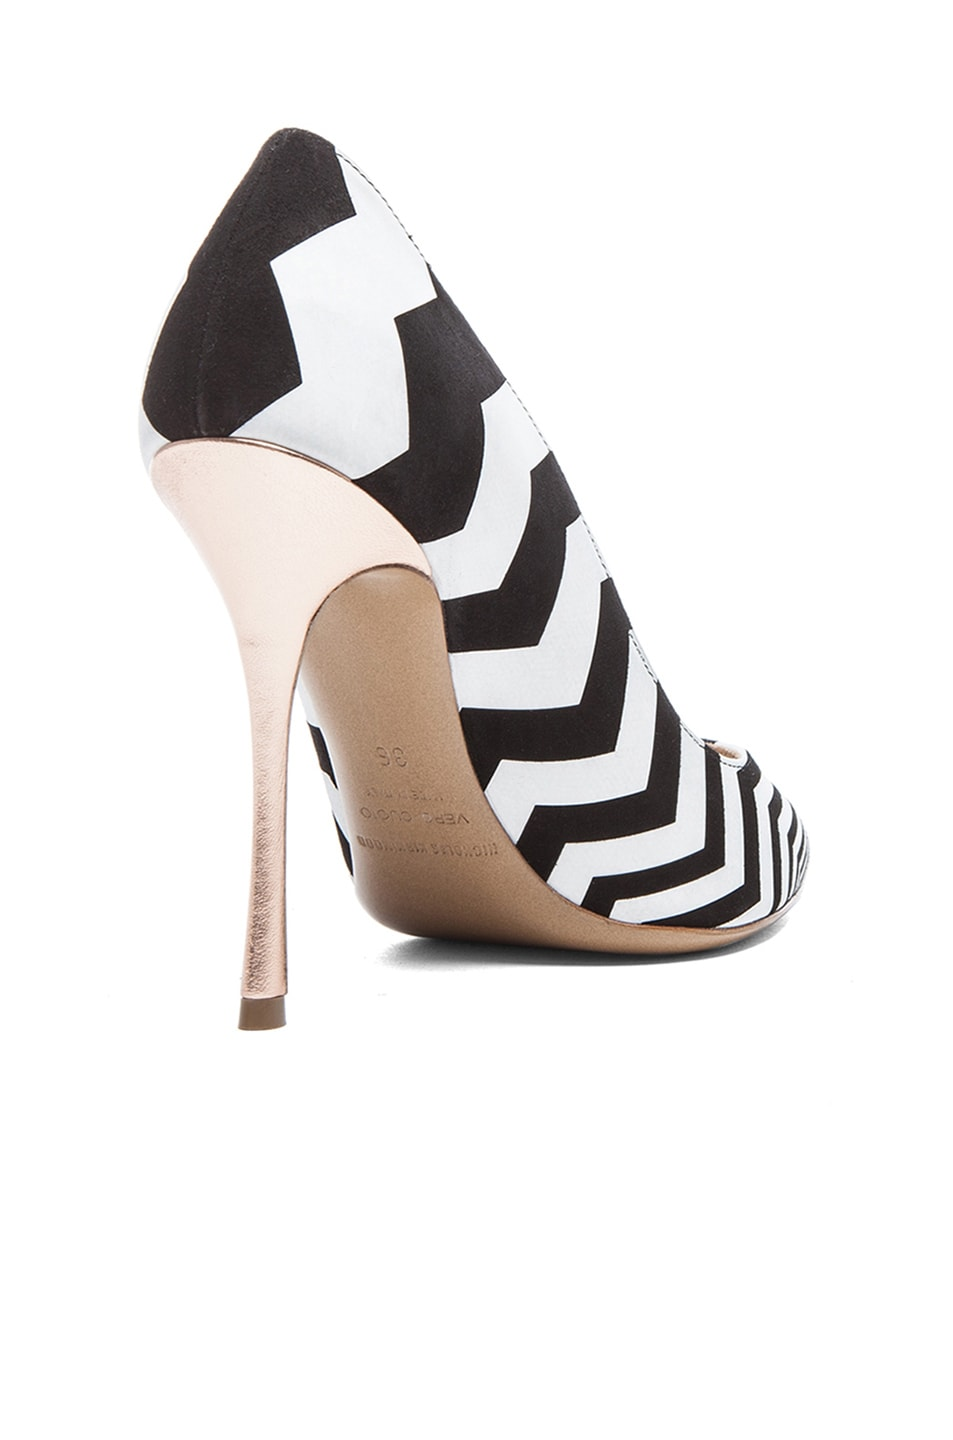 Image 3 of Nicholas Kirkwood Zig Zag Printed Suede Pumps in Black & White